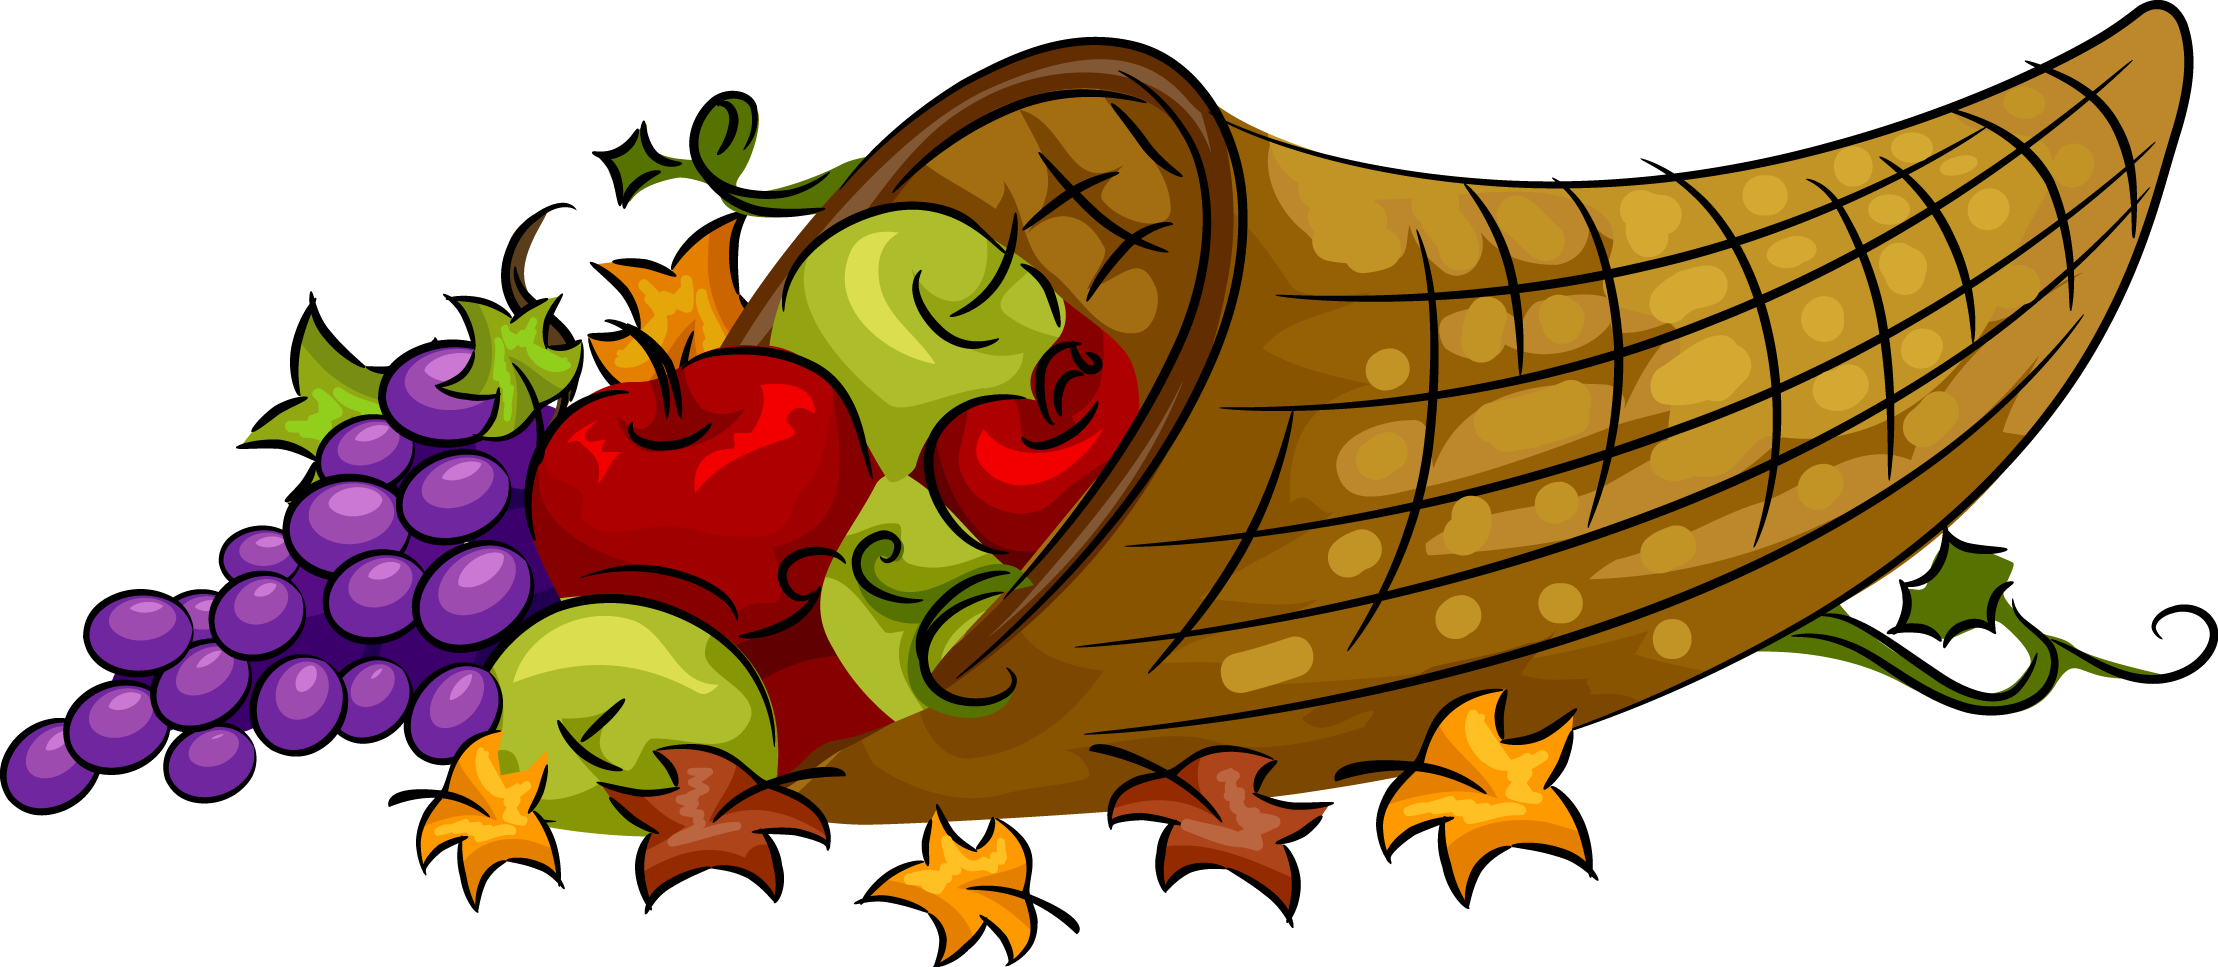 thanksgiving cornucopia clipart at getdrawings com free for rh getdrawings com cornucopia clipart free cornucopia clip art free